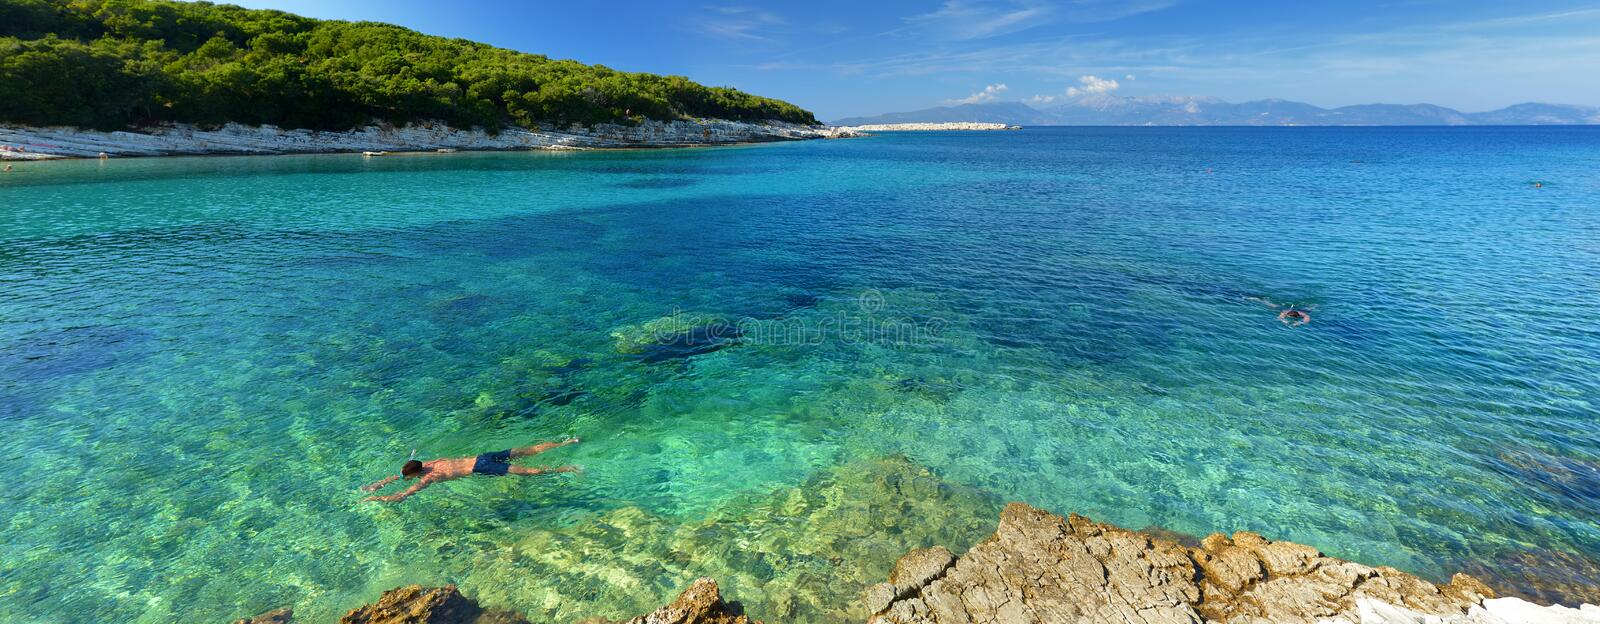 Scenic view of Emplisi Beach, picturesque stony beach in a secluded bay, with clear waters popular for snorkelling. Small pebble. Beach near Fiscardo town of royalty free stock photo